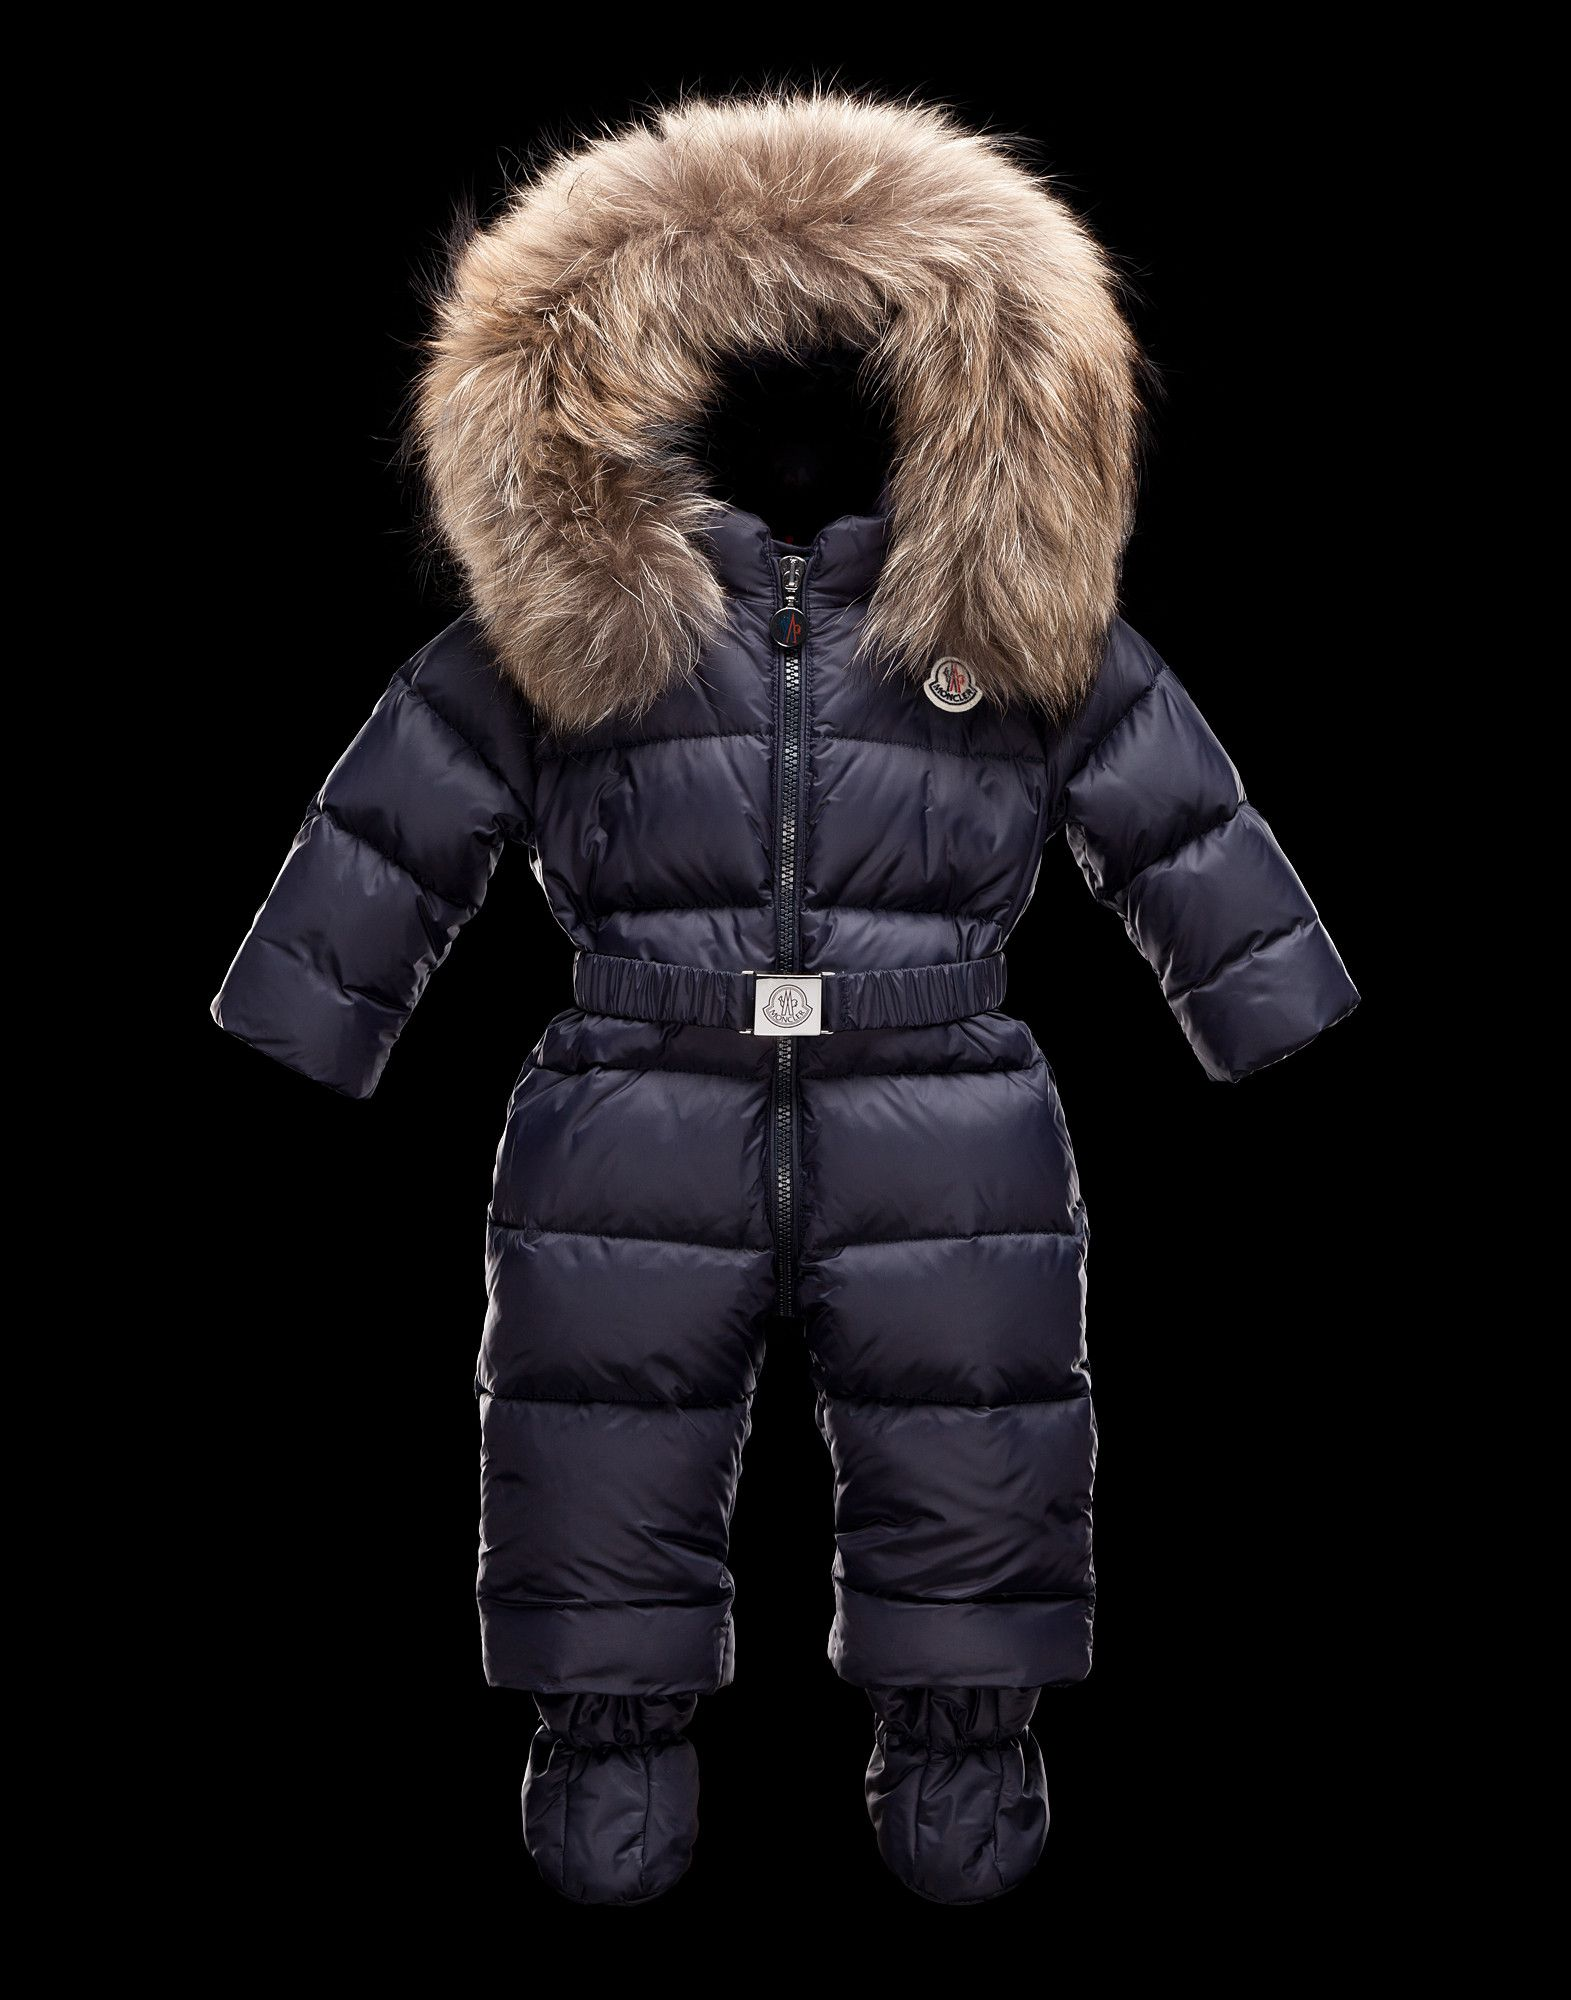 53b48cfa9 MONCLER ENFANT - Autumn Winter 12-13 - OUTERWEAR - All in one ...